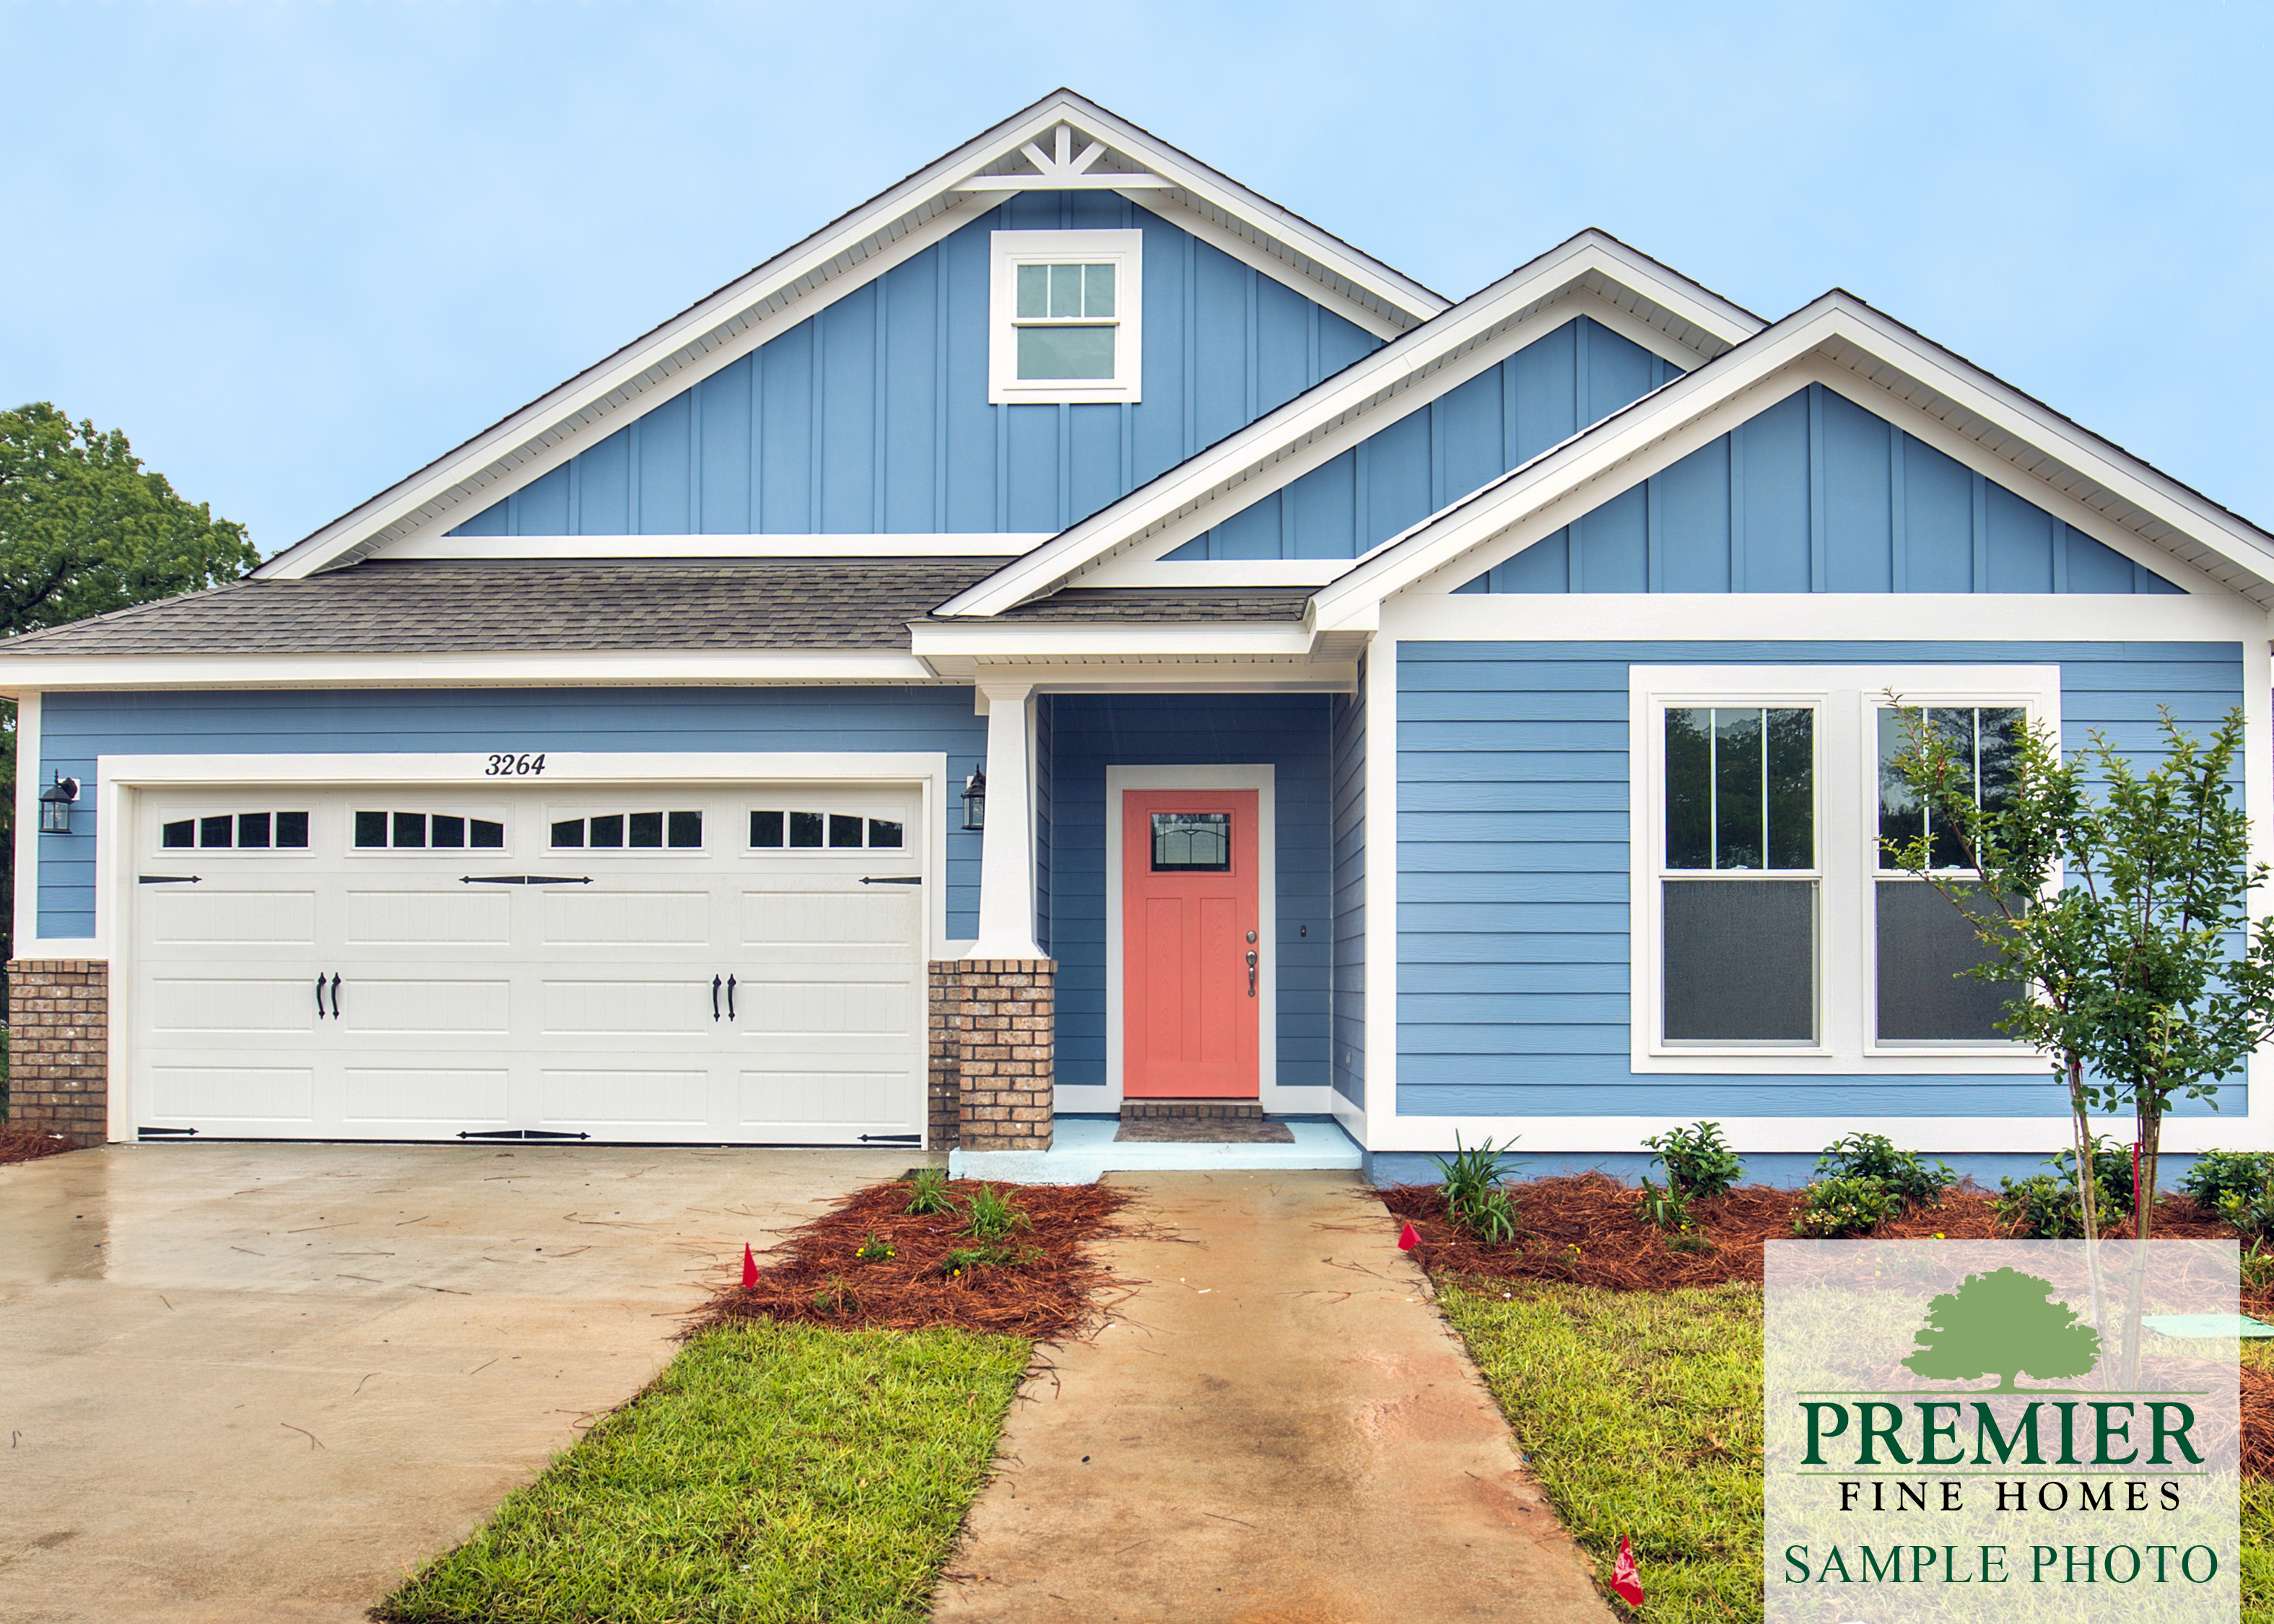 Premier Homes Thumbnail Image